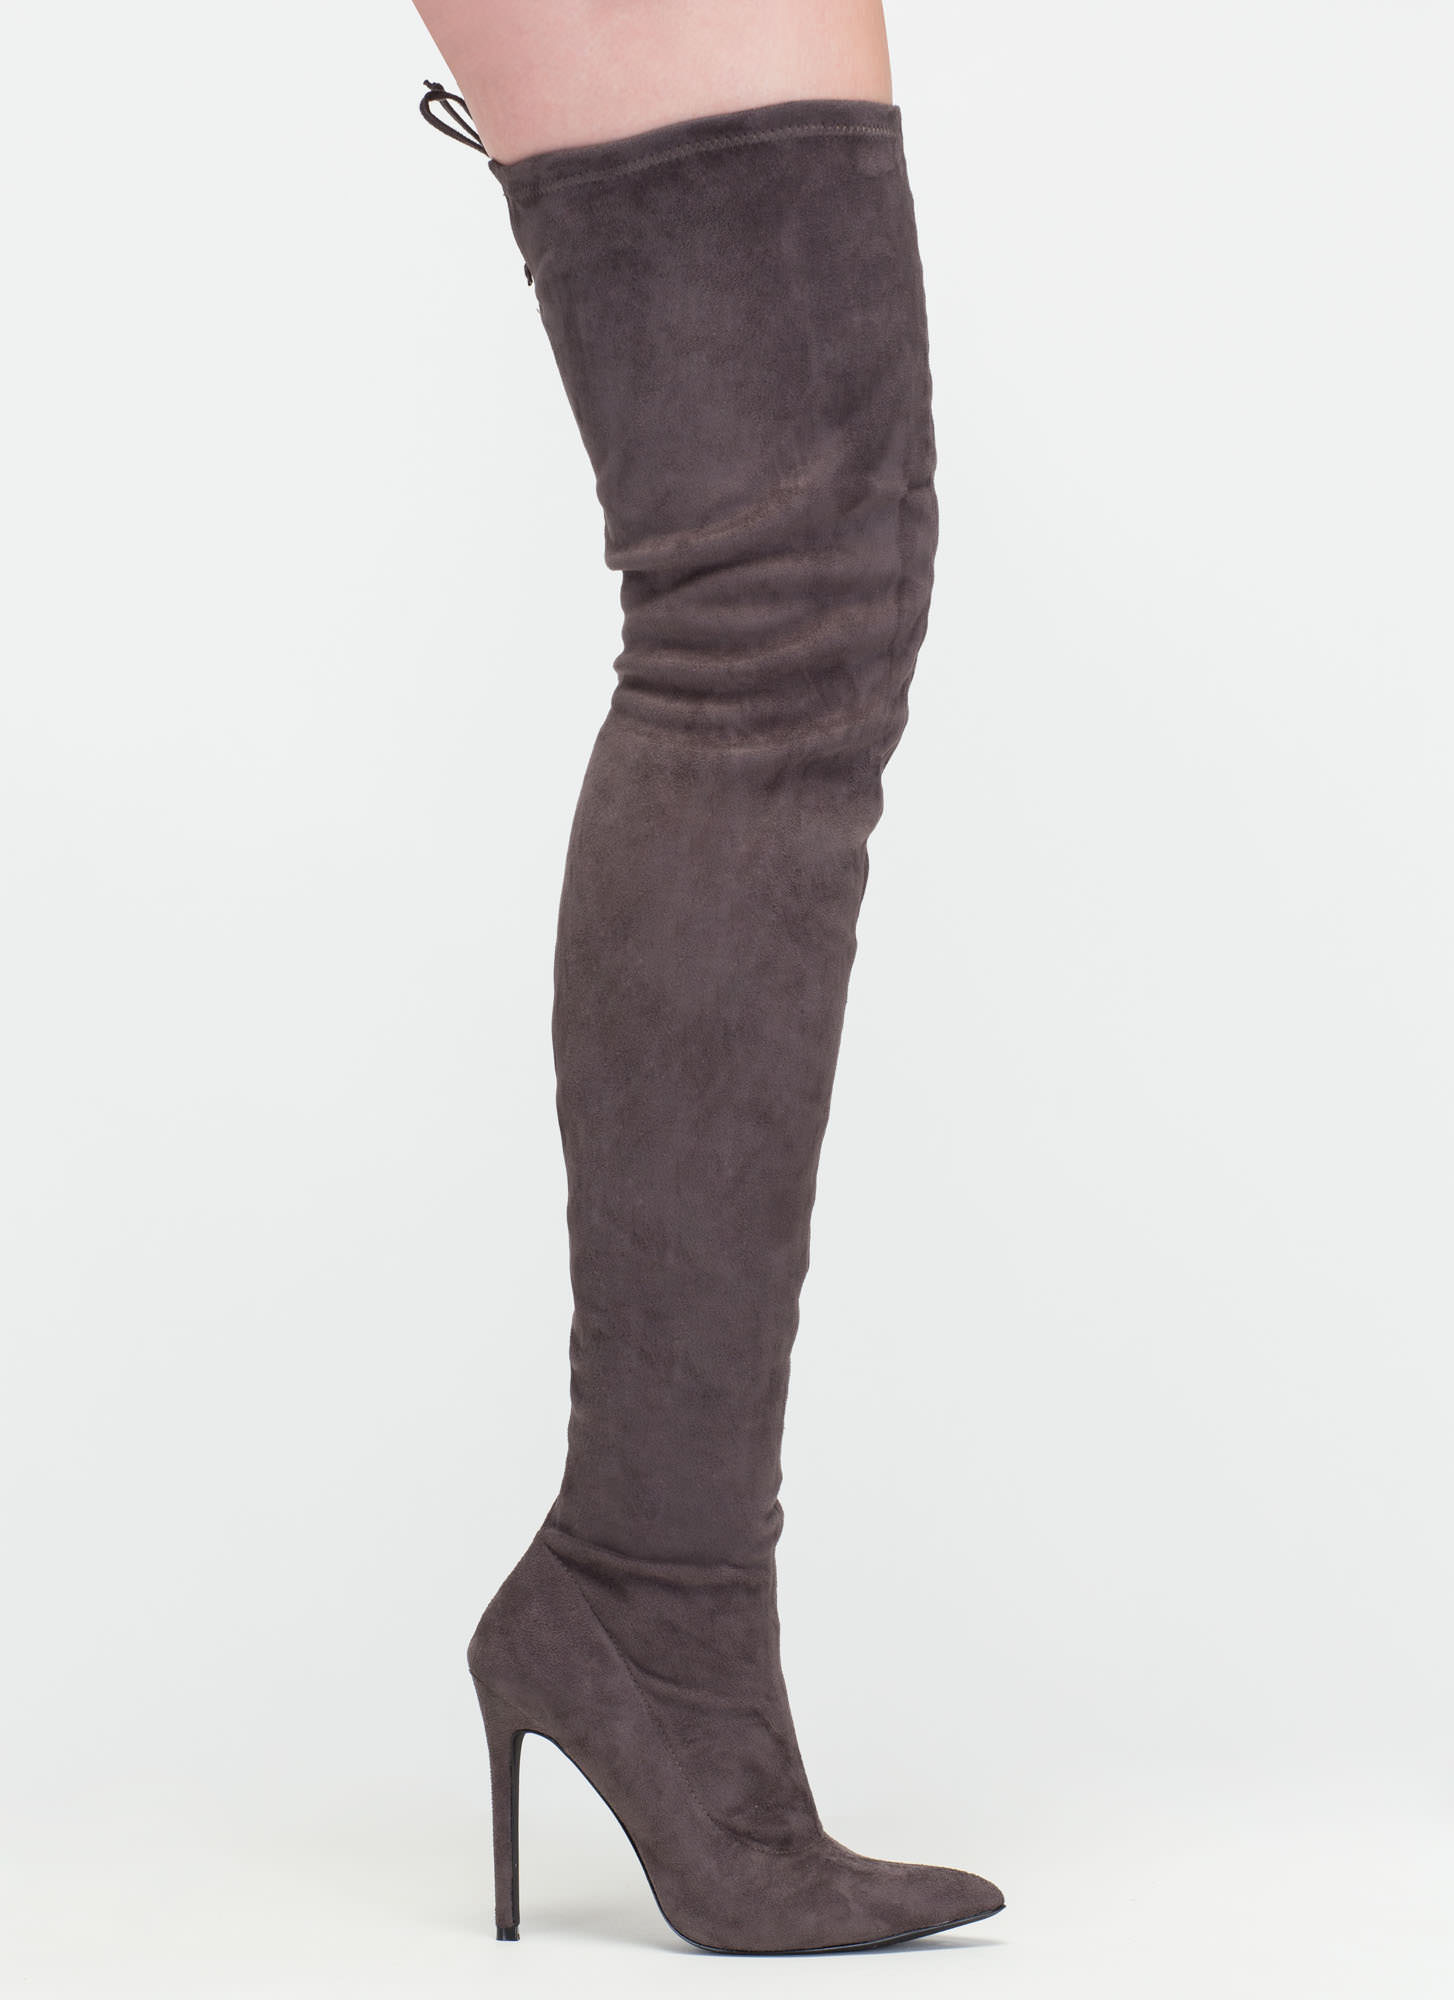 Crush Hard Faux Suede Thigh-High Boots GREY